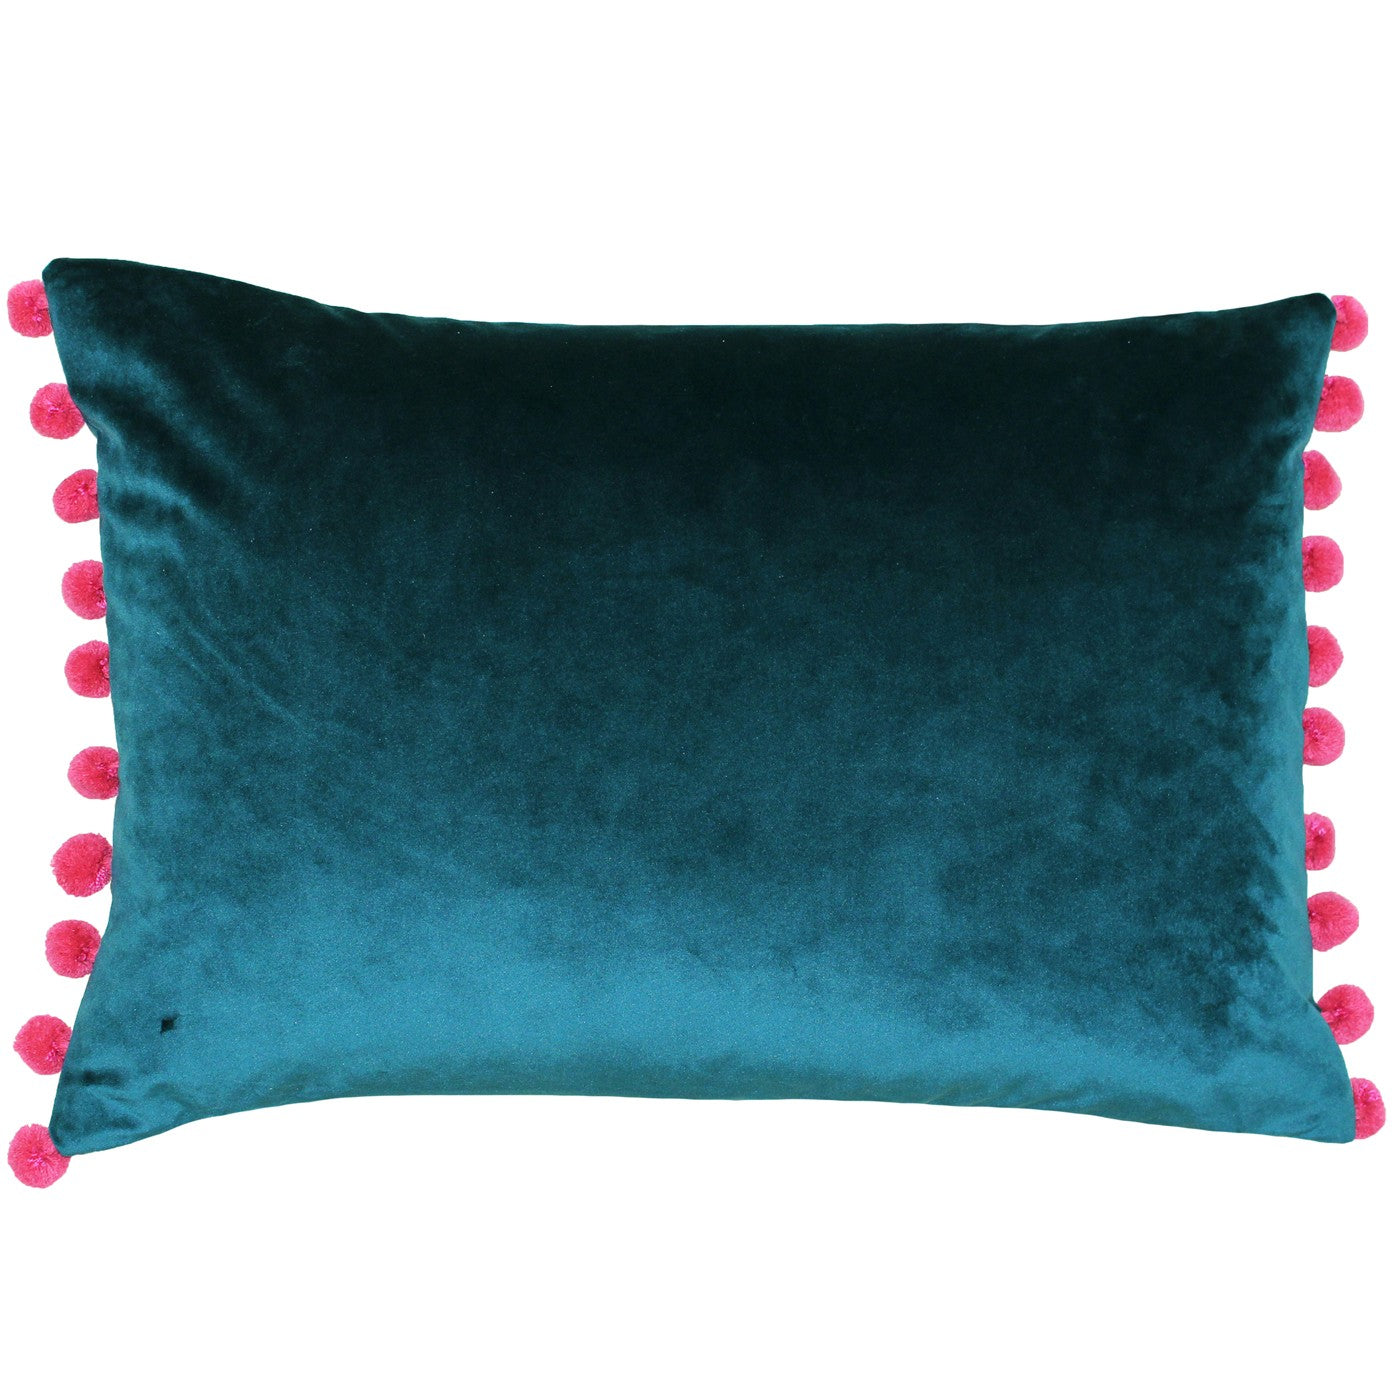 Fiesta Pom Pom Velvet Cushion - Teal / Raspberry